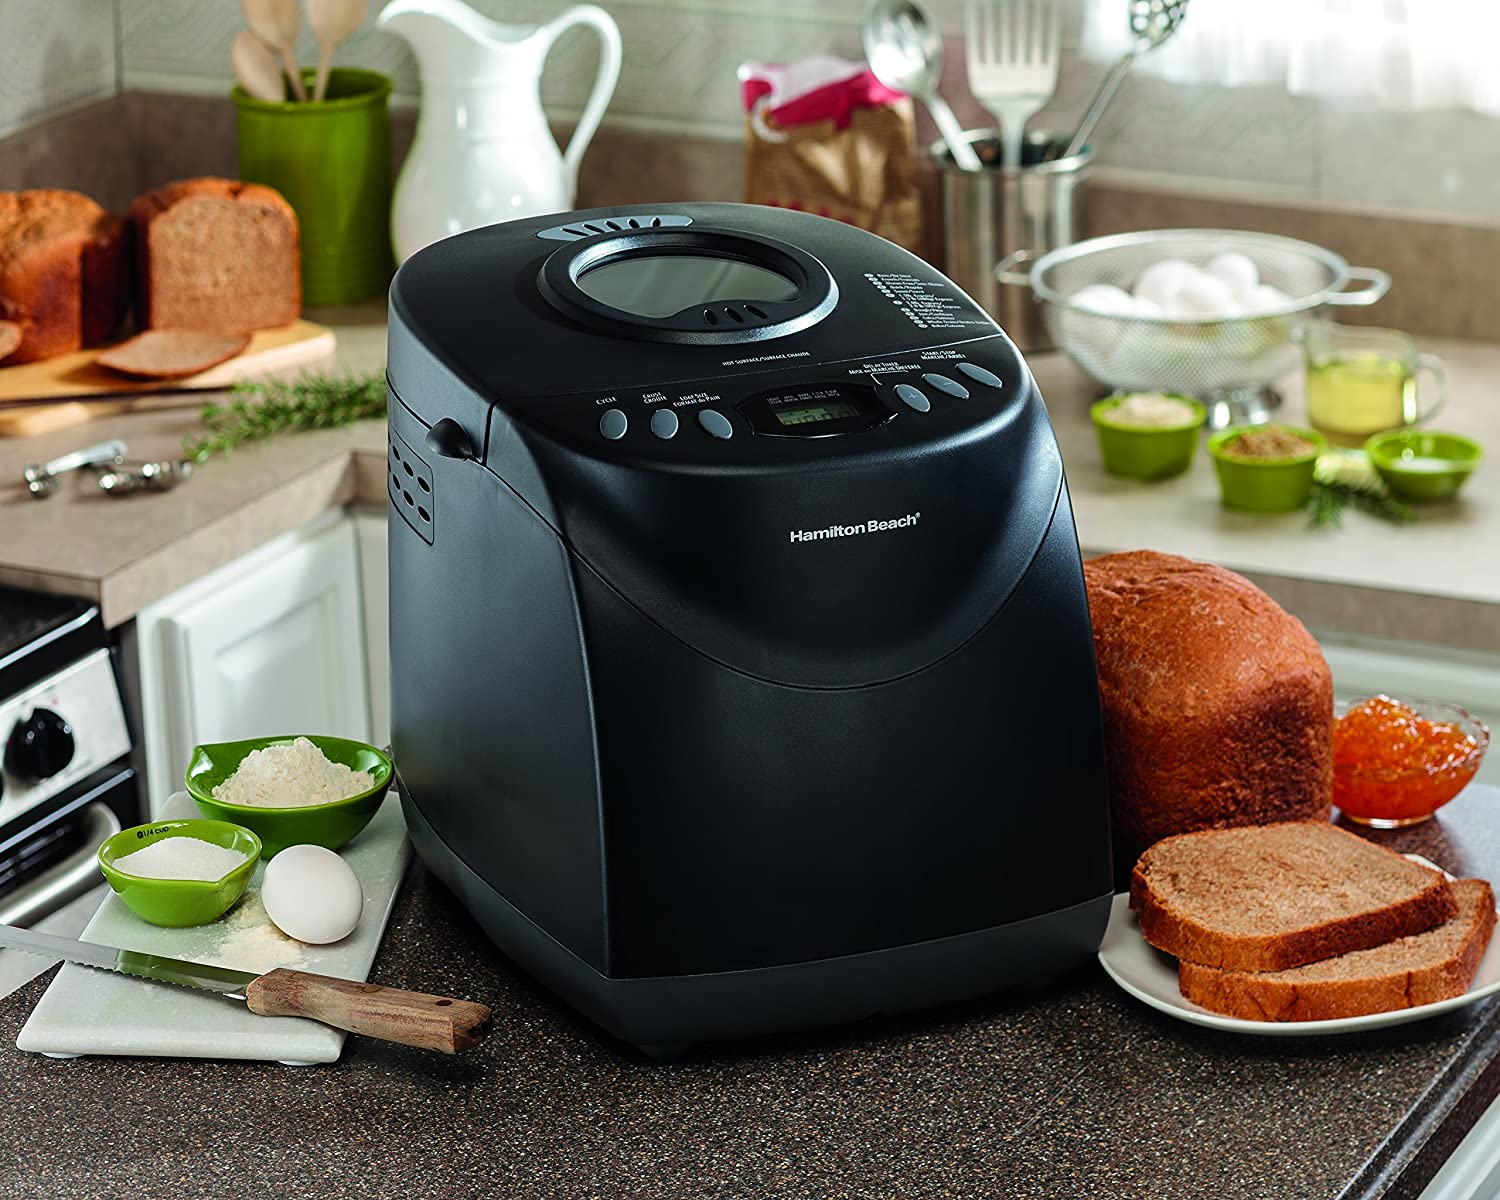 Hamilton Beach 29882 Bread Maker Cyber Monday Deal 2019